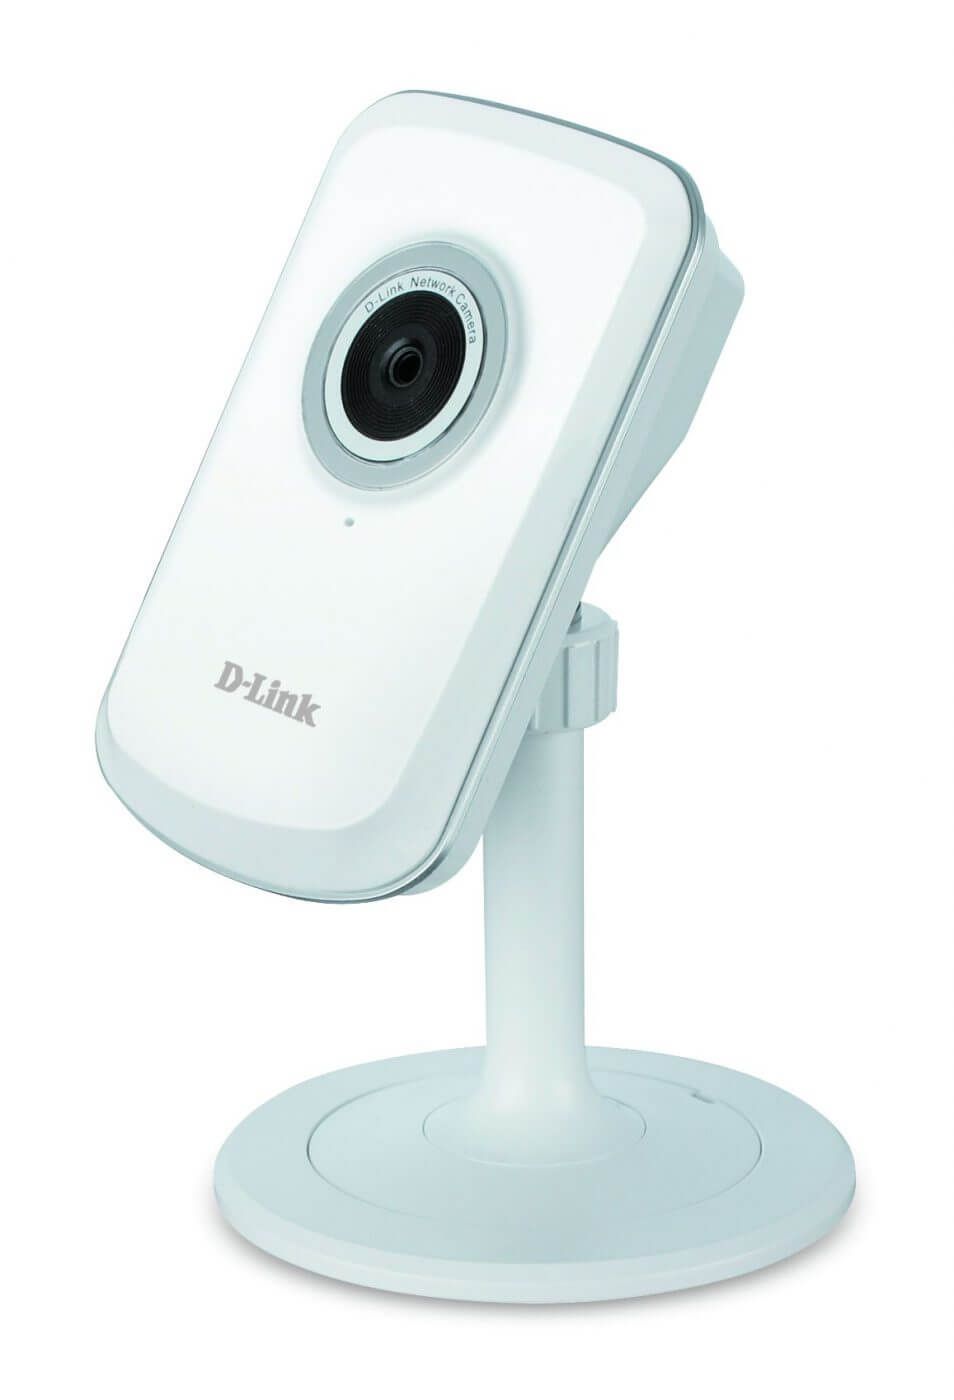 d link cloud cameras and routers at ces geek news central. Black Bedroom Furniture Sets. Home Design Ideas